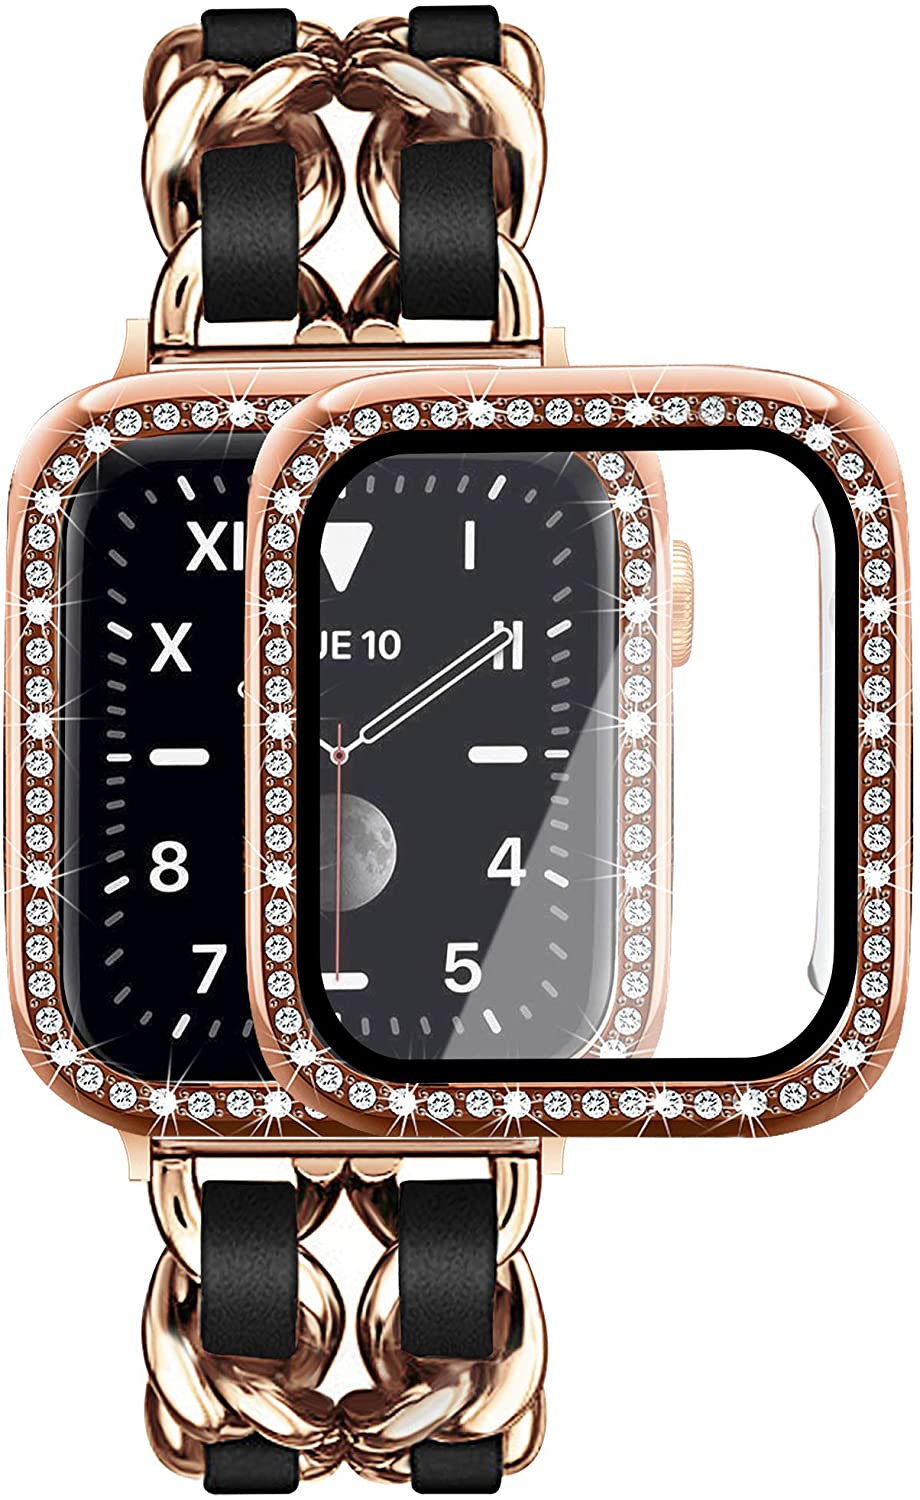 Mosonio Compatible for Apple Watch Band 38mm 40mm 42mm 44mm with Screen Protector Case Women, Jewelry Bracelet Metal Strap with 2-Pack Bling Case Cover for iWatch Series 6 5 4 3 2 1